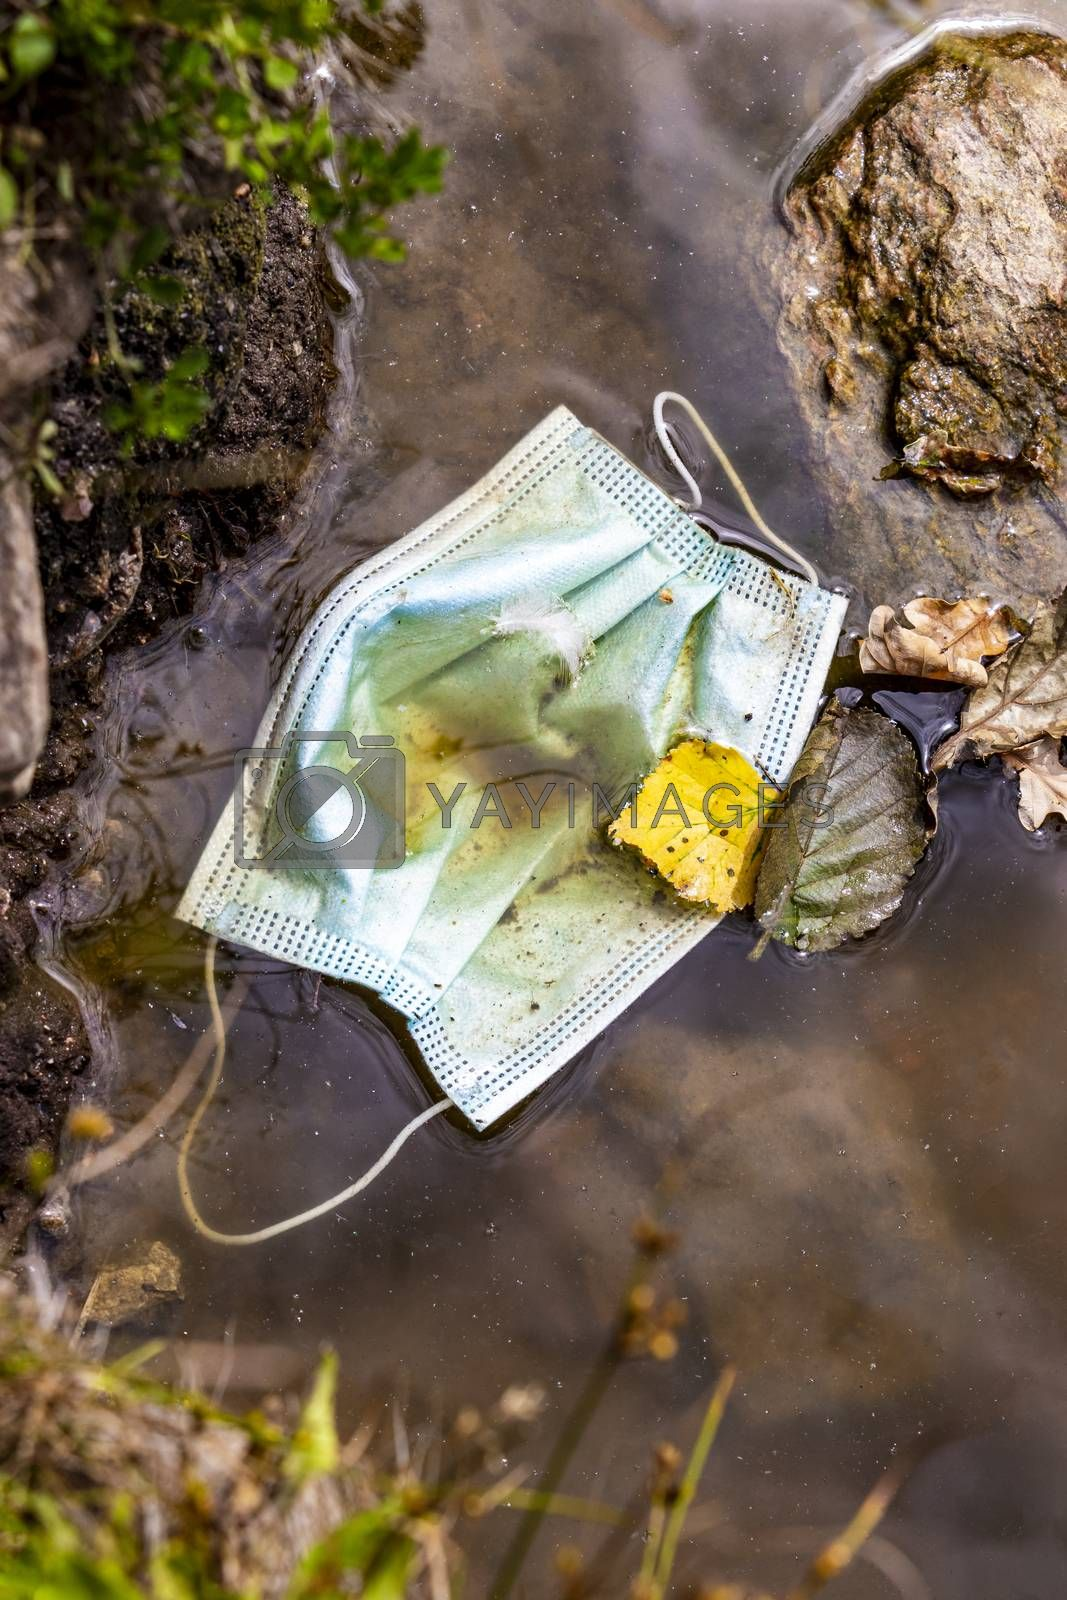 Surgical masks in the nature. Hanging in a lake. Corona virus pollution. Leherheide, Bremerhaven.